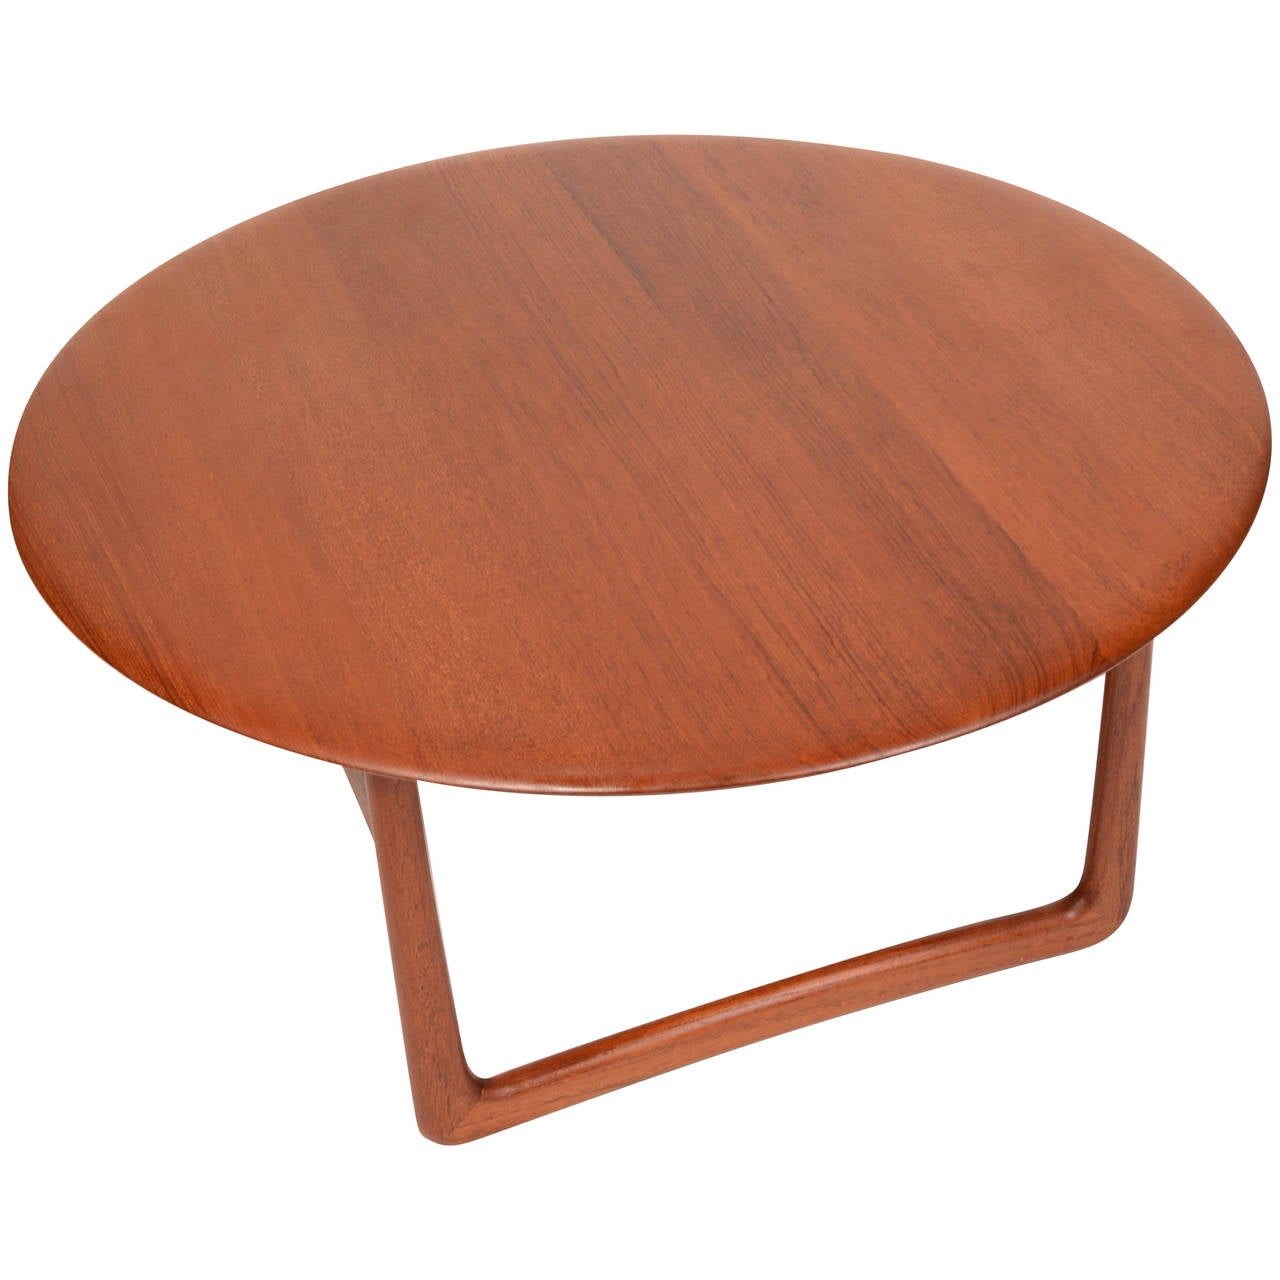 Solid teak danish modern round coffee table by povl dinesen for france and s n at 1stdibs Round coffee table modern